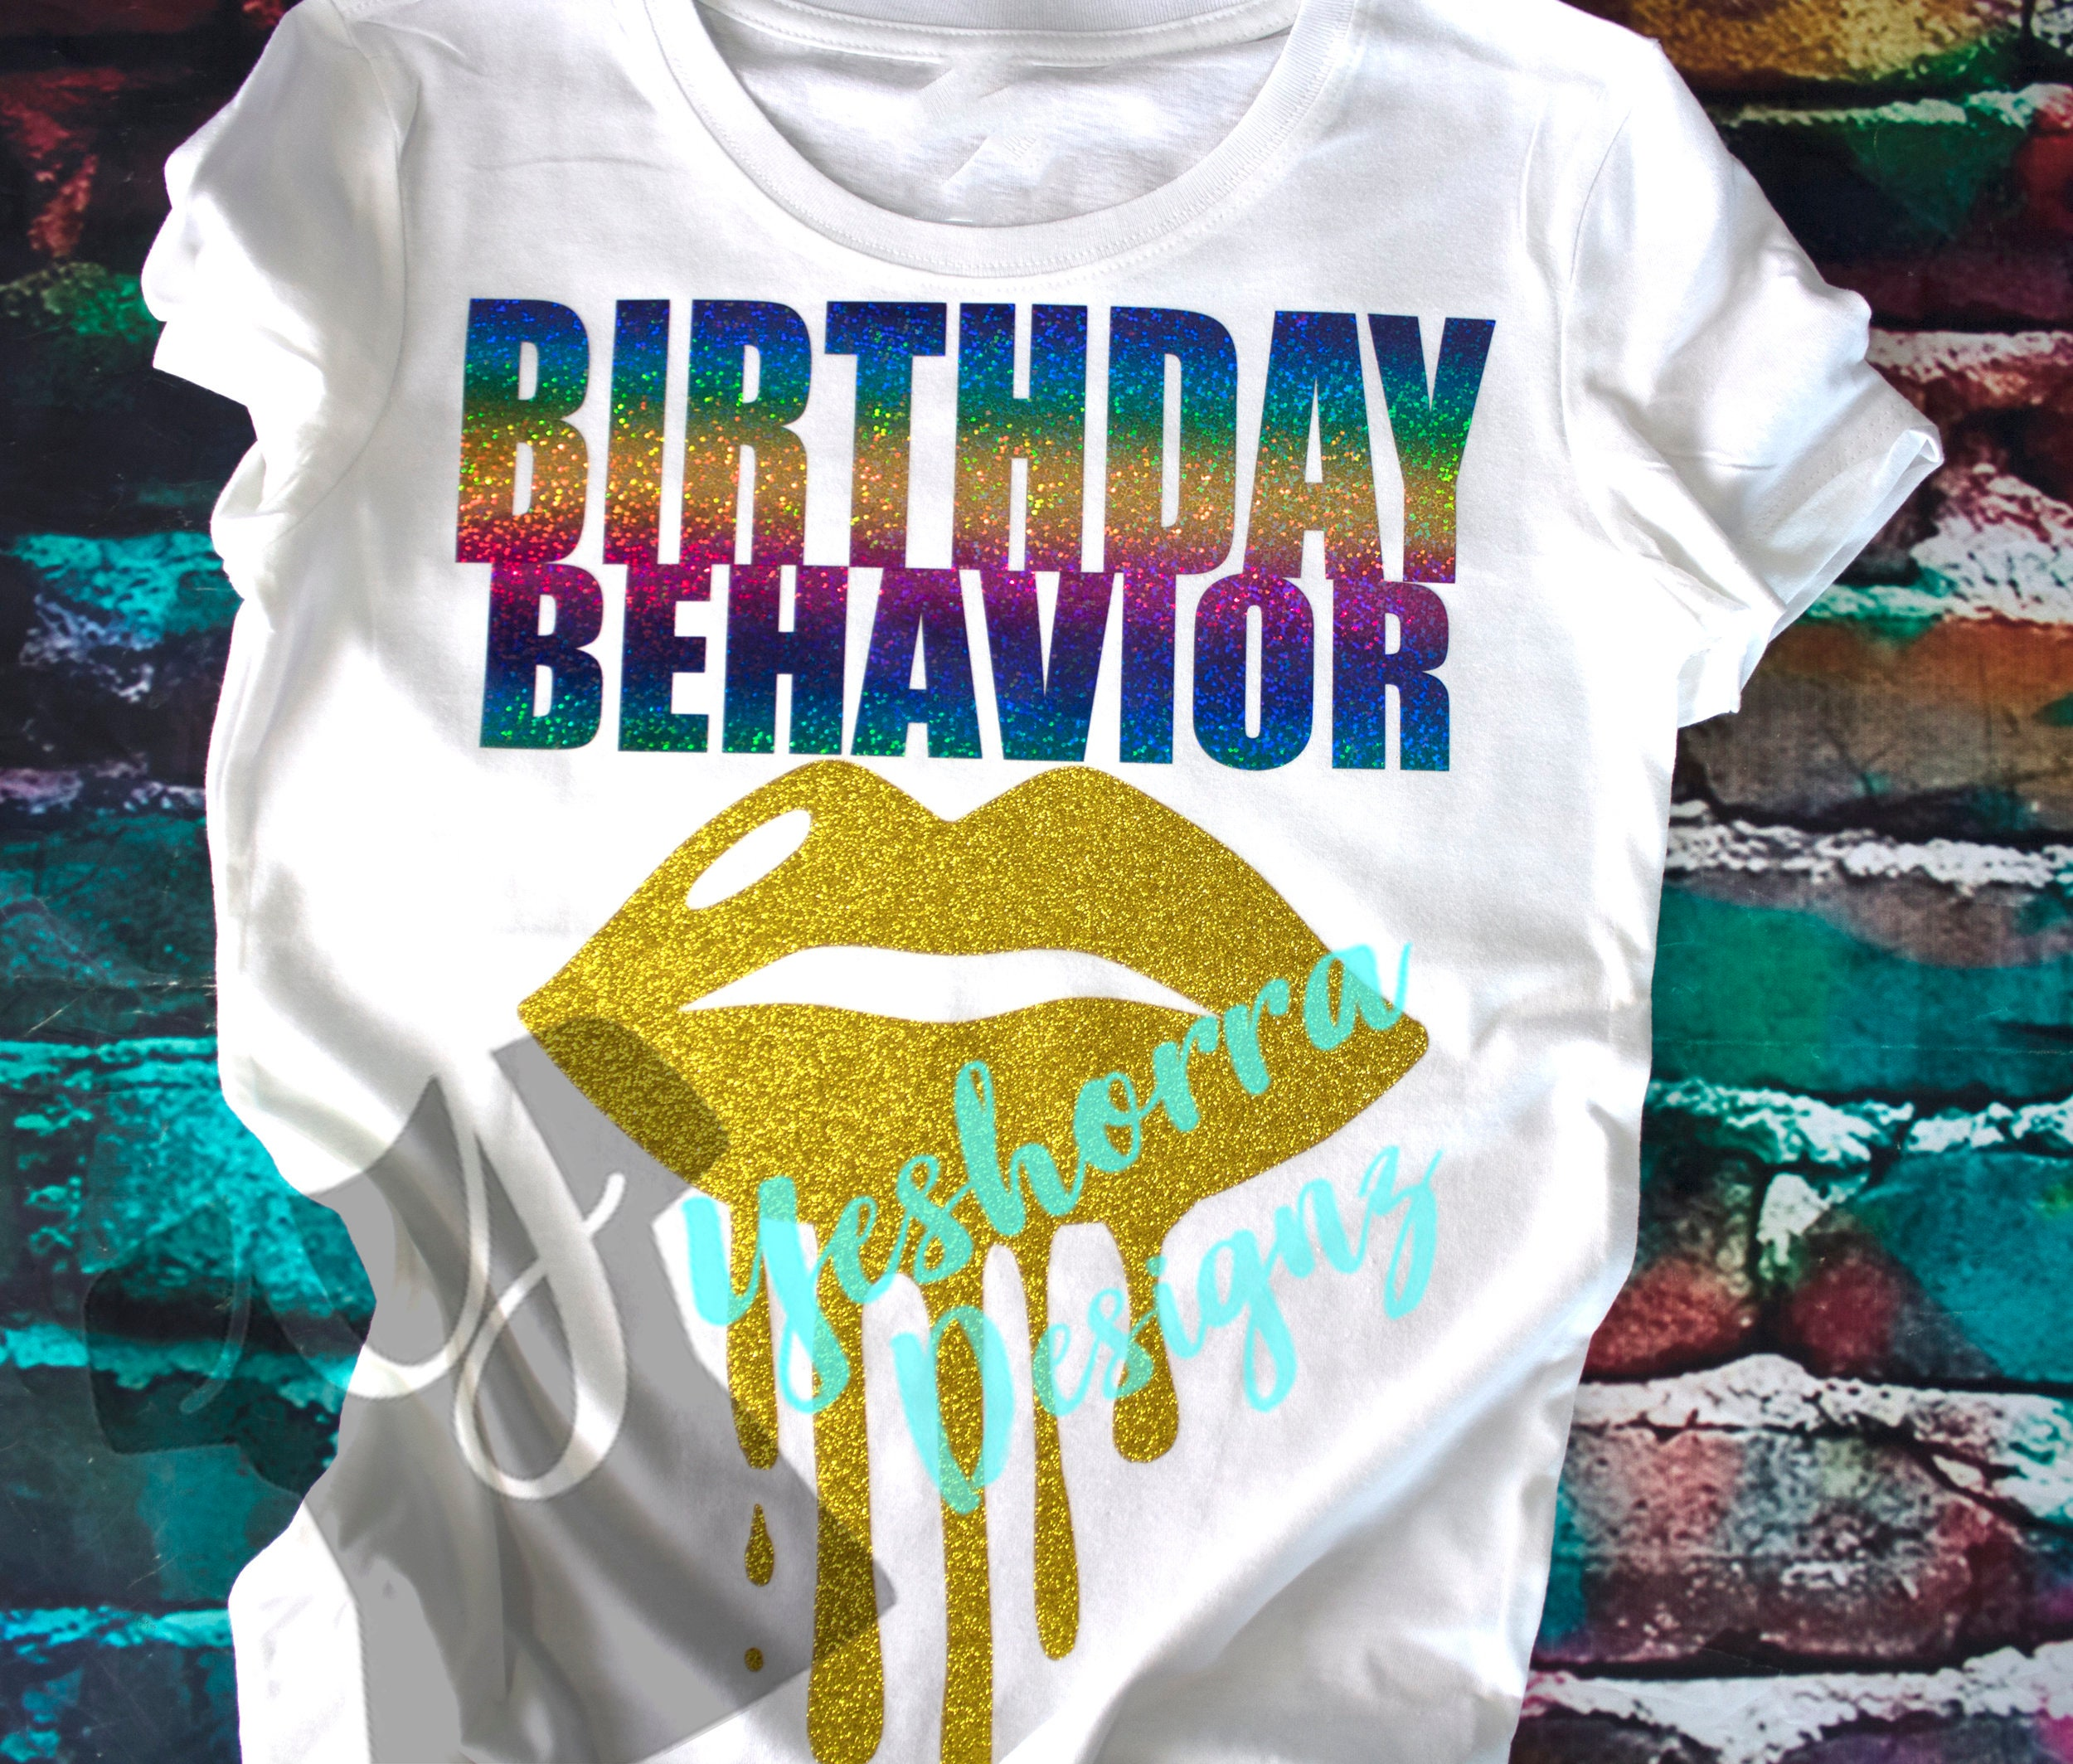 Birthday Shirt Behavior Rainbow